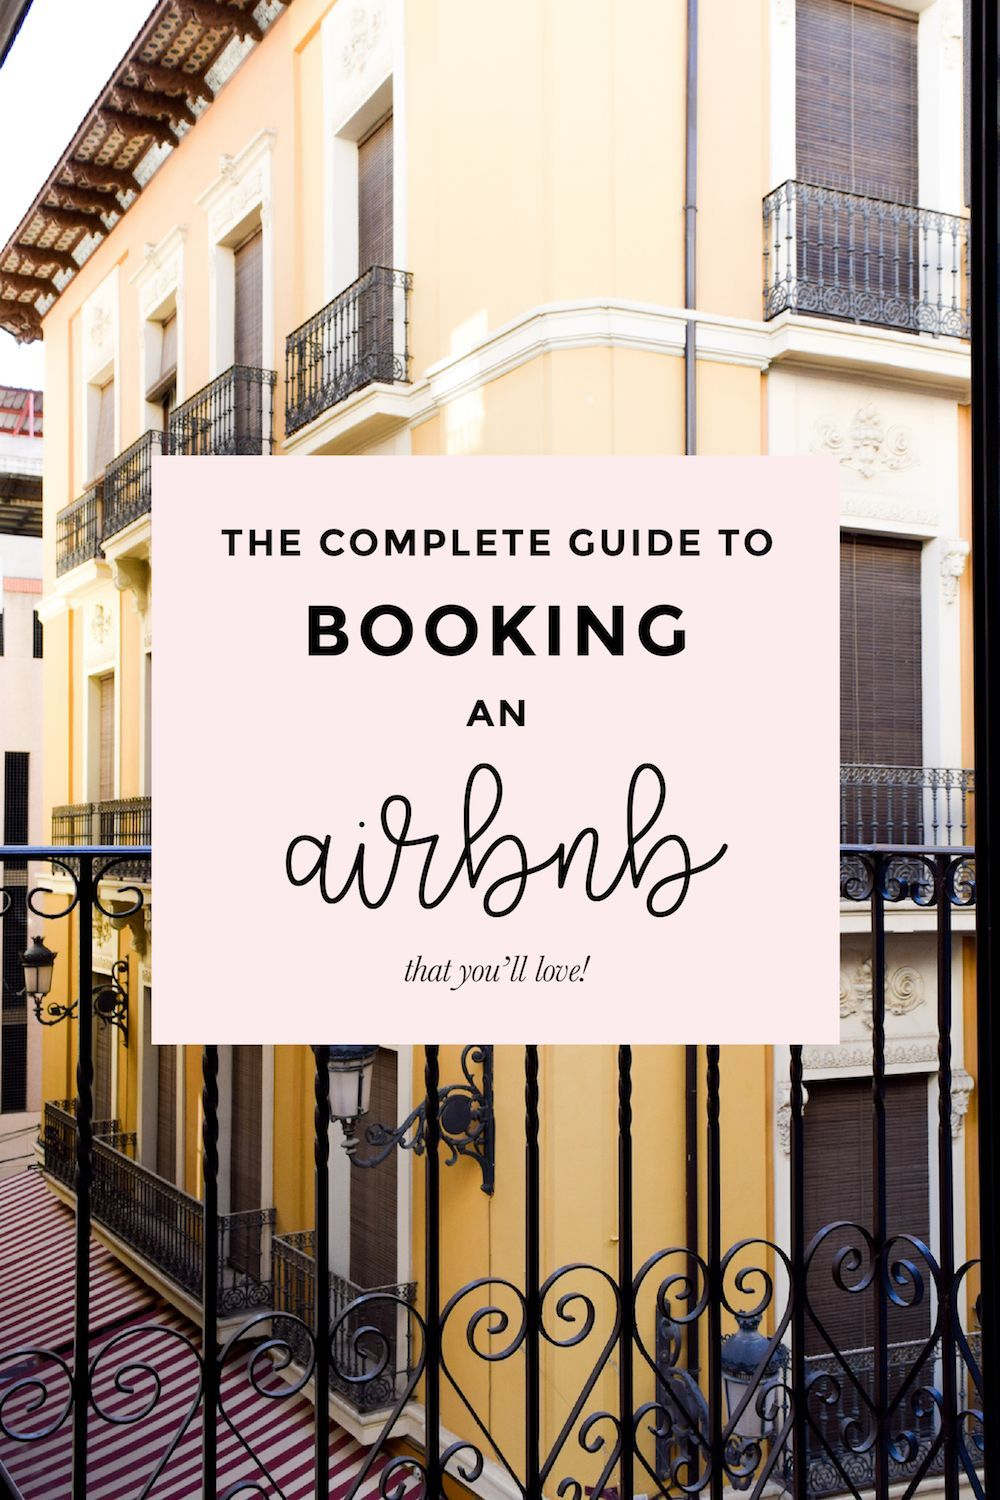 The Complete Guide to Booking an Airbnb